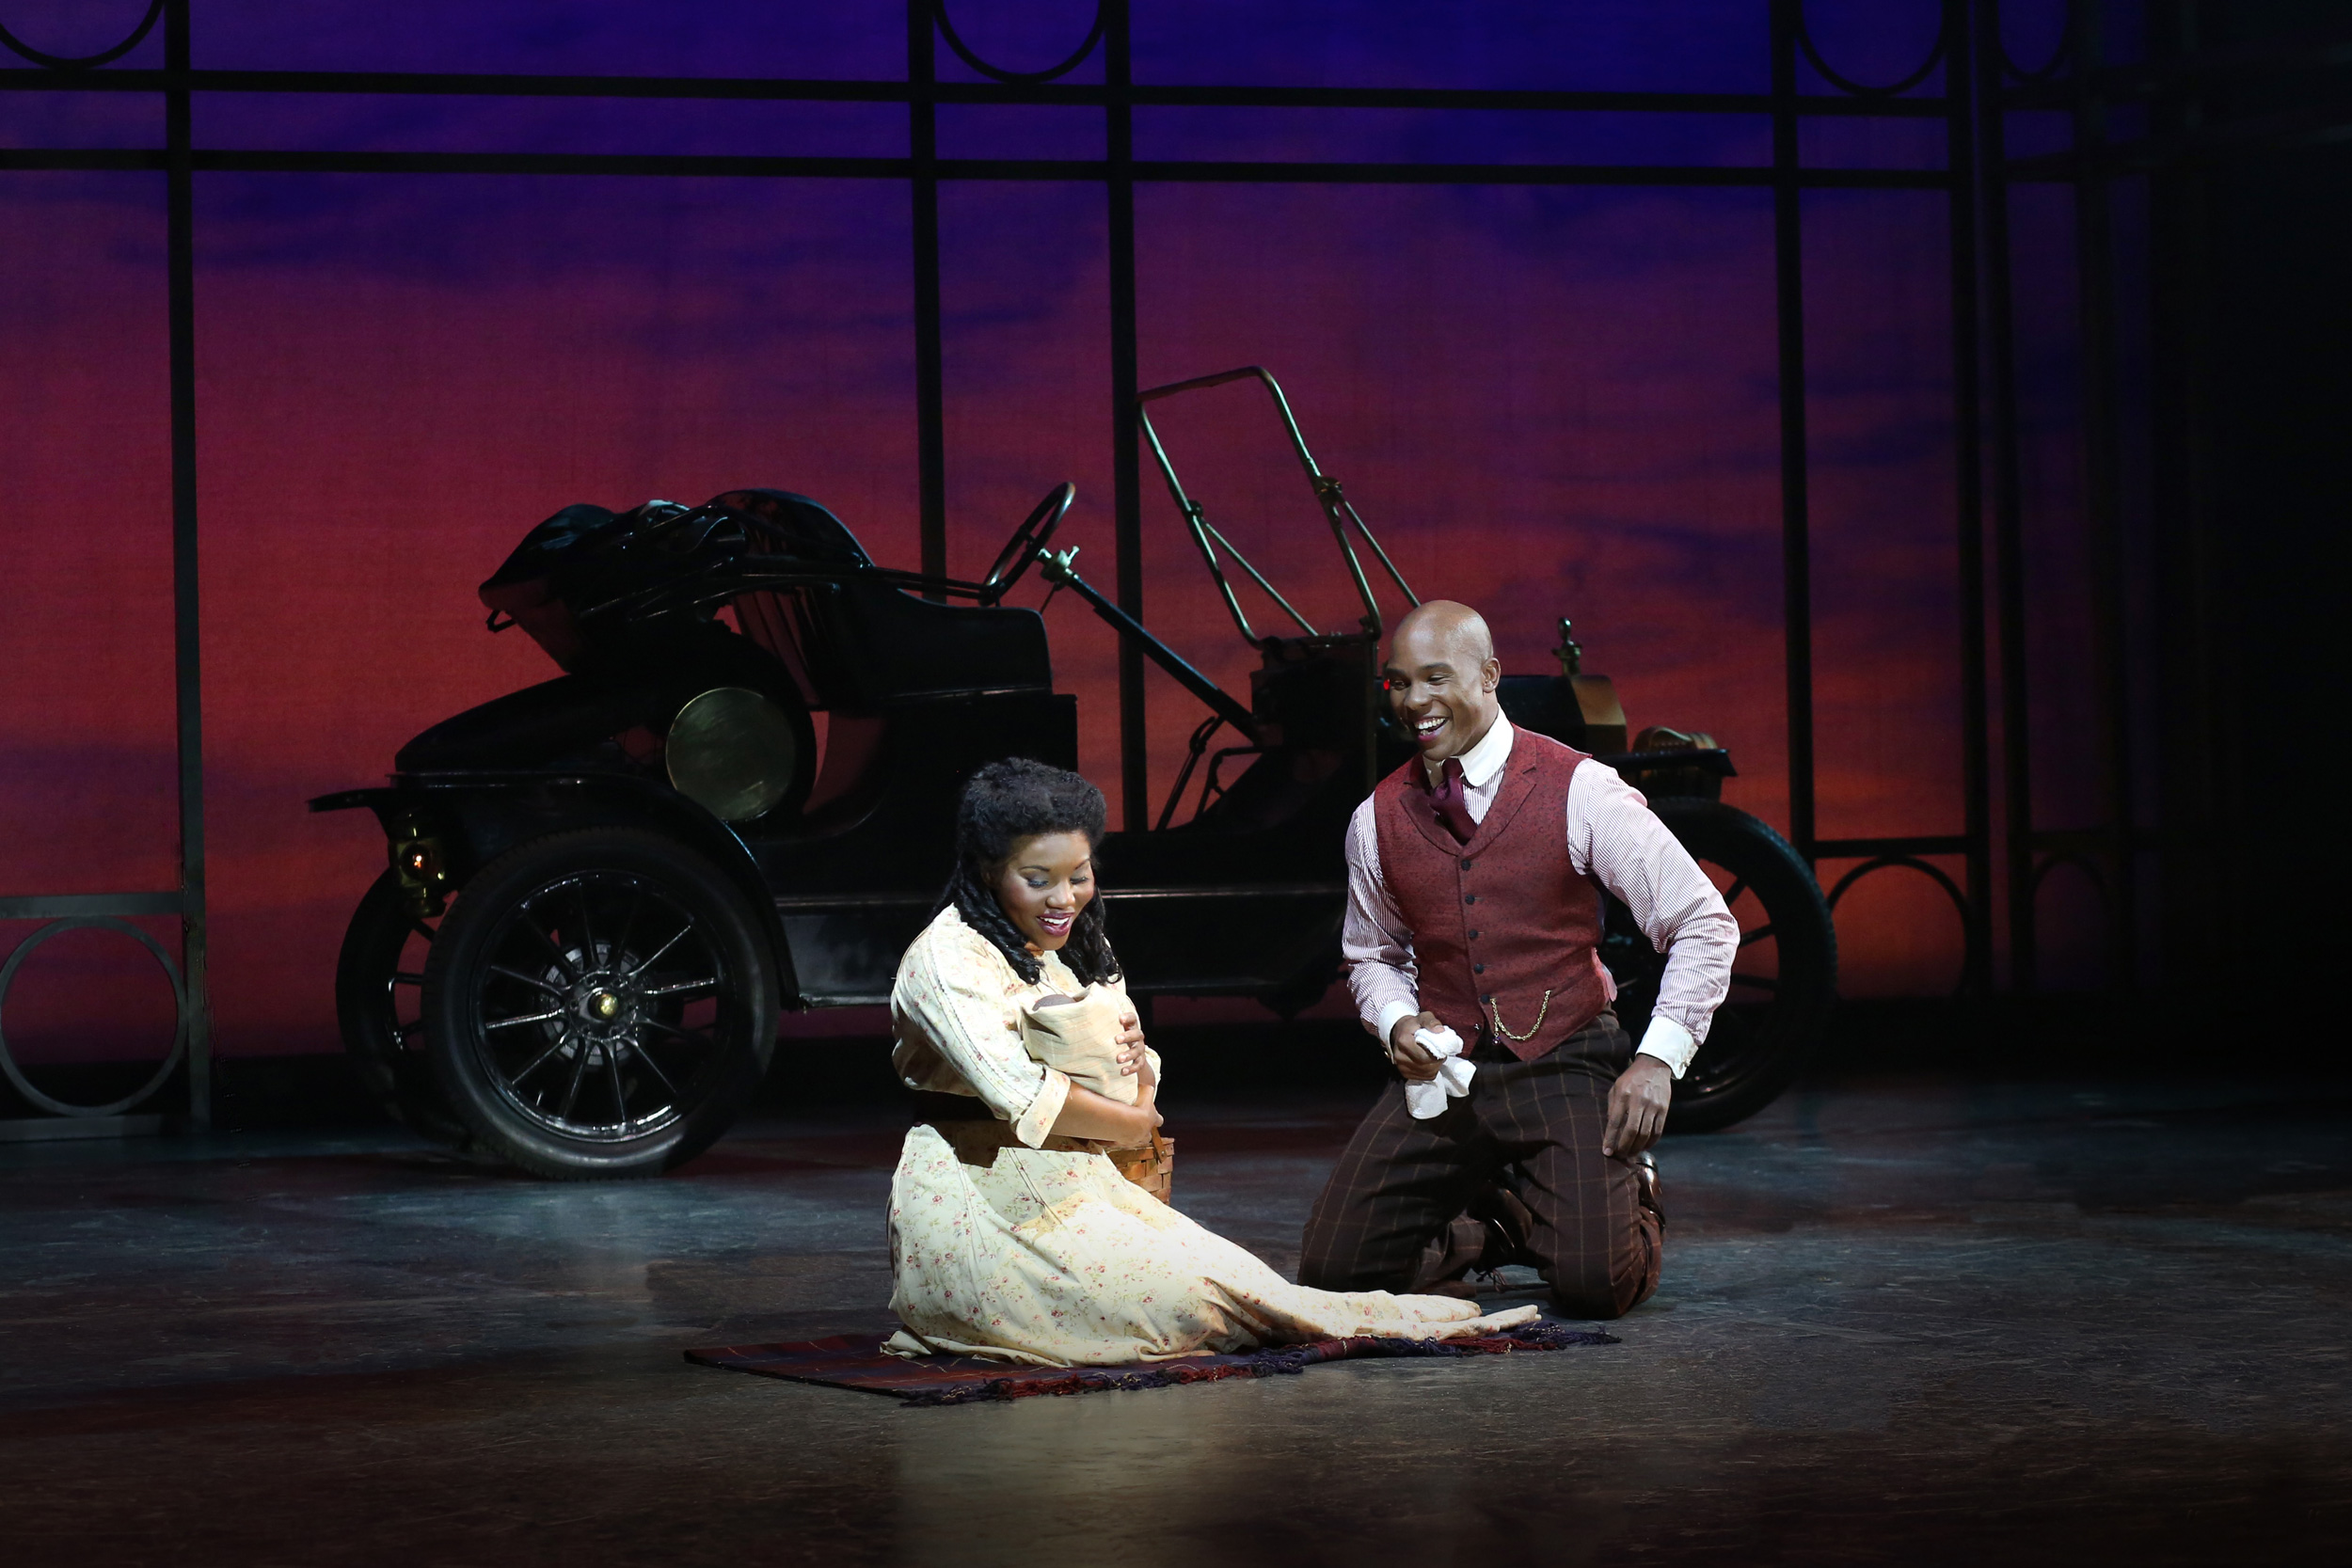 2017_Ragtime_Lindsay-Roberts_Darnell-Abraham_photo-by_Julia-Russell.jpg